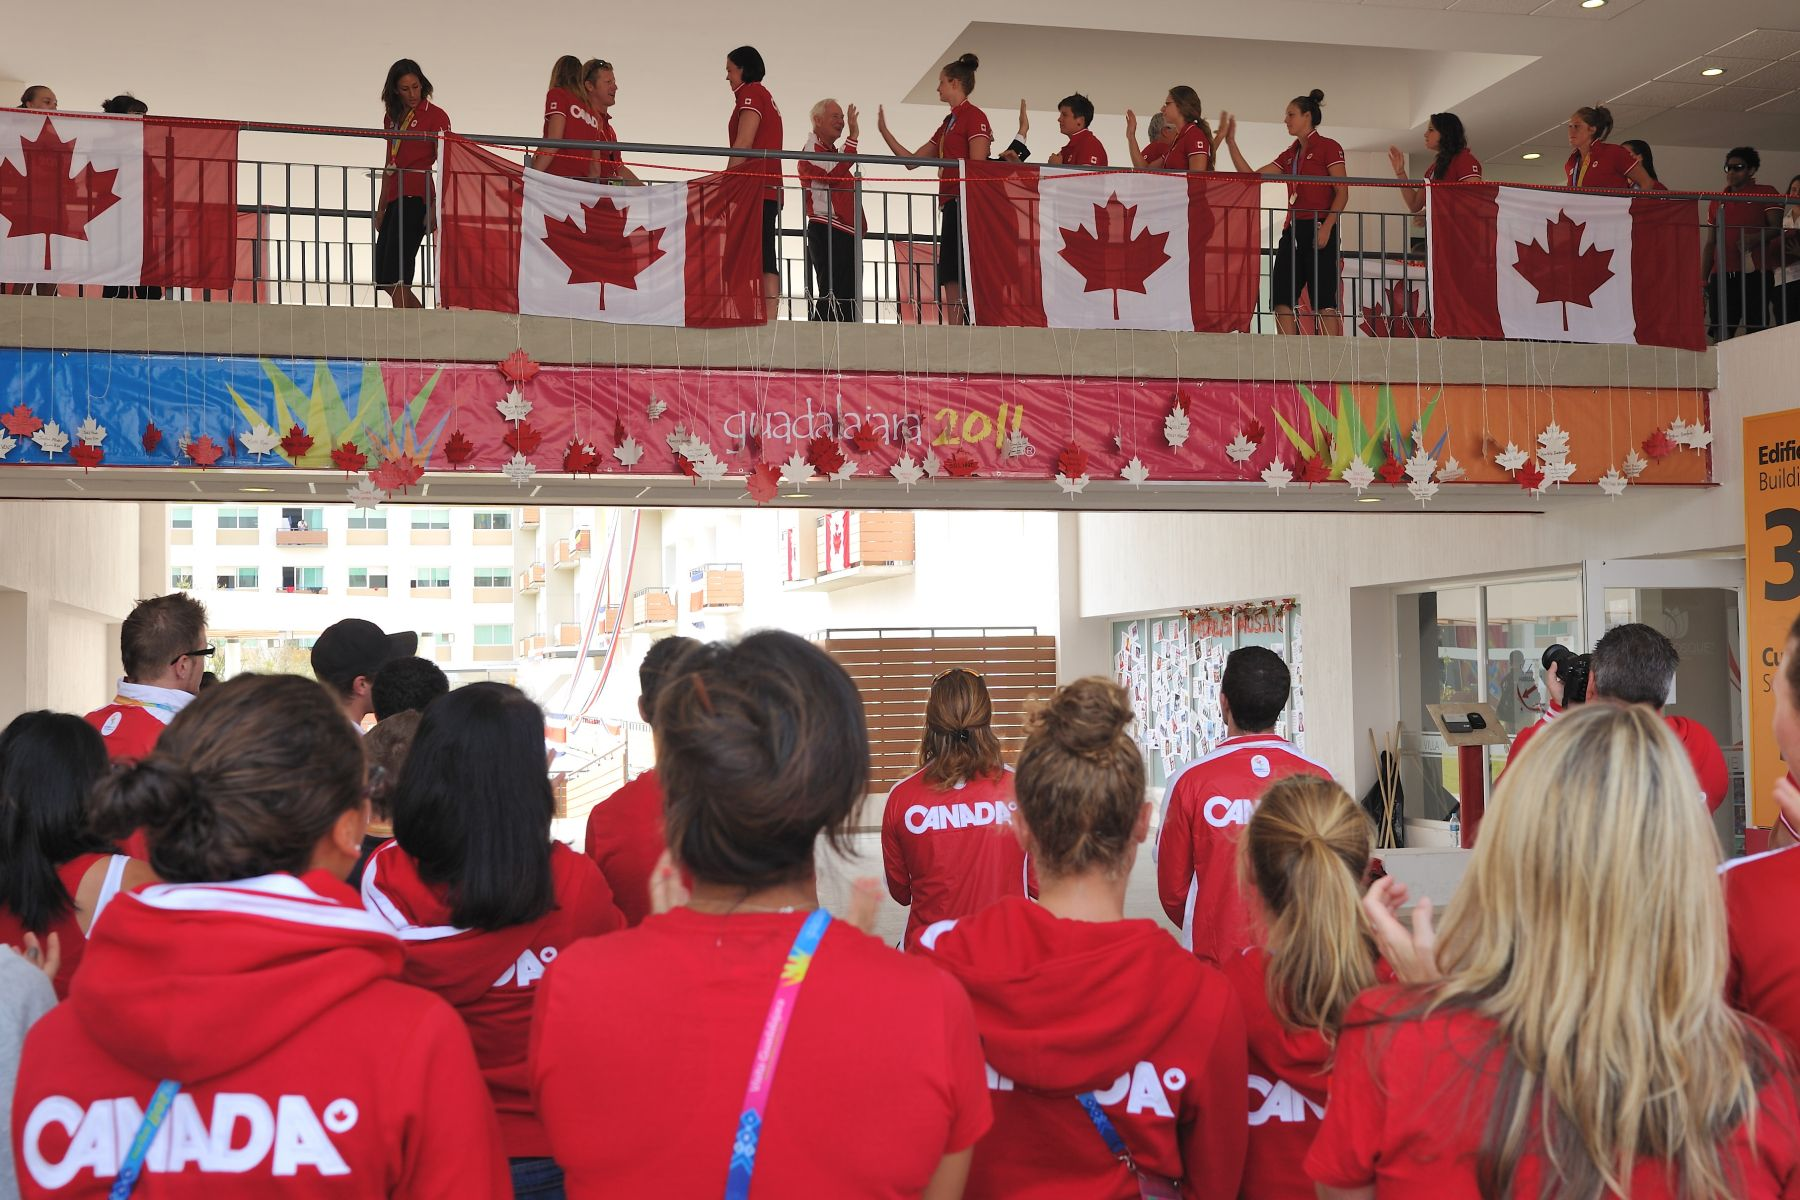 The Governor General was invited to attend Team Canada's own medal ceremony.